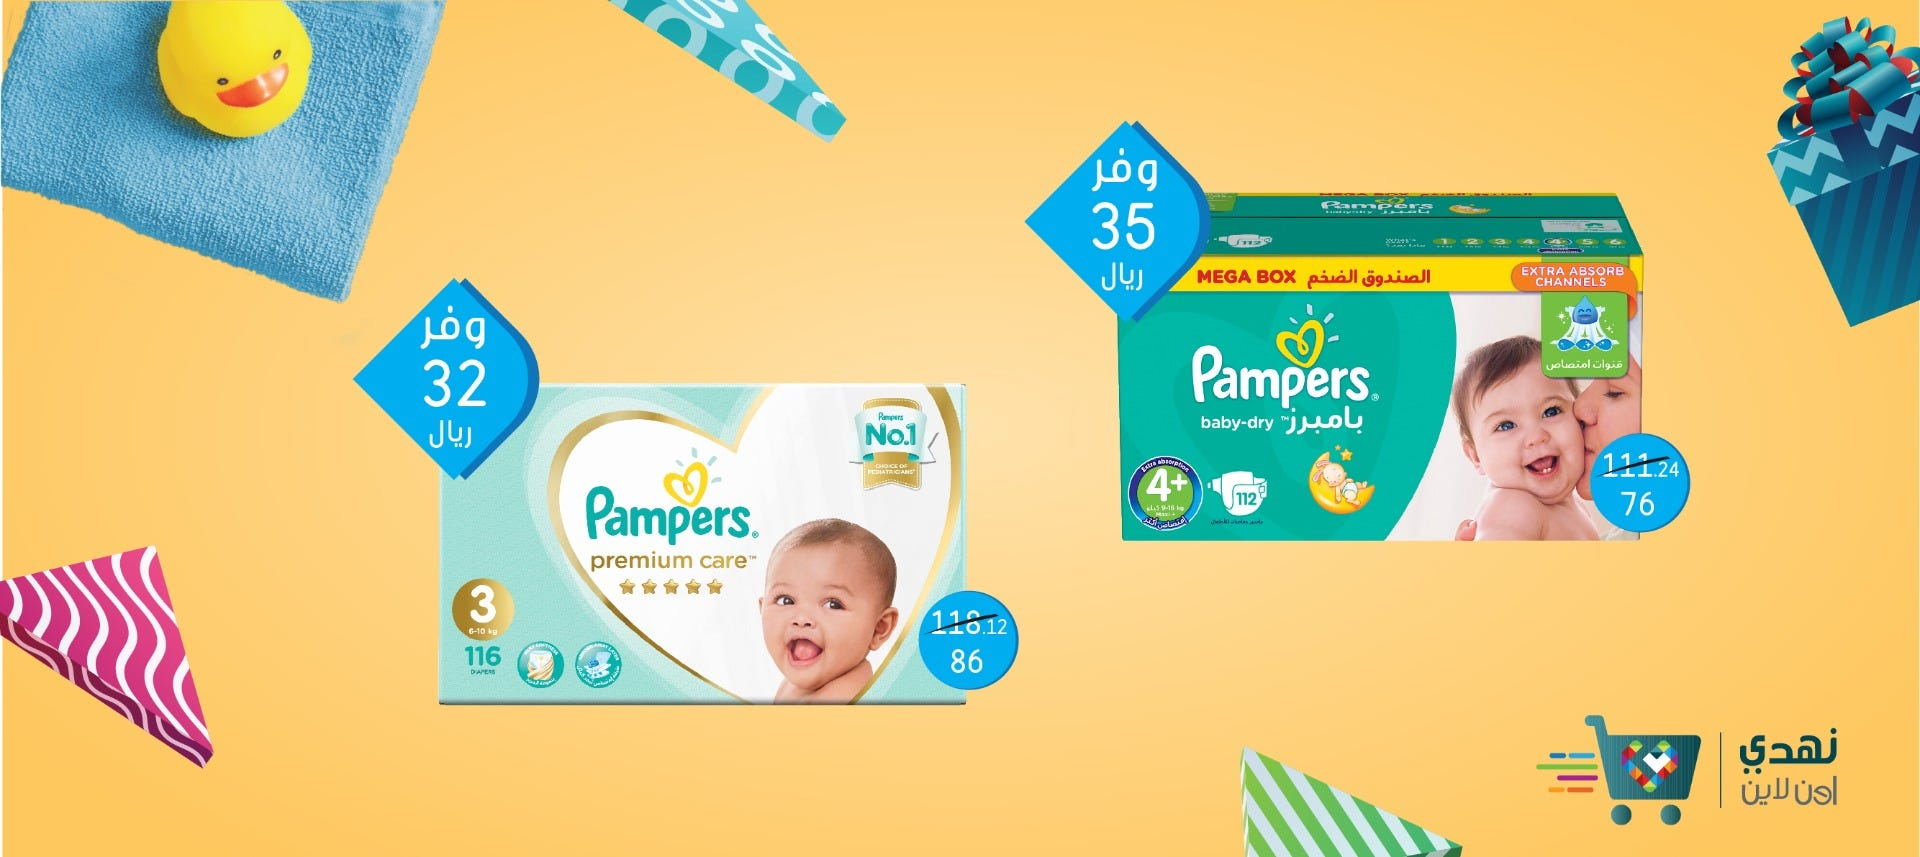 Pampers Offer